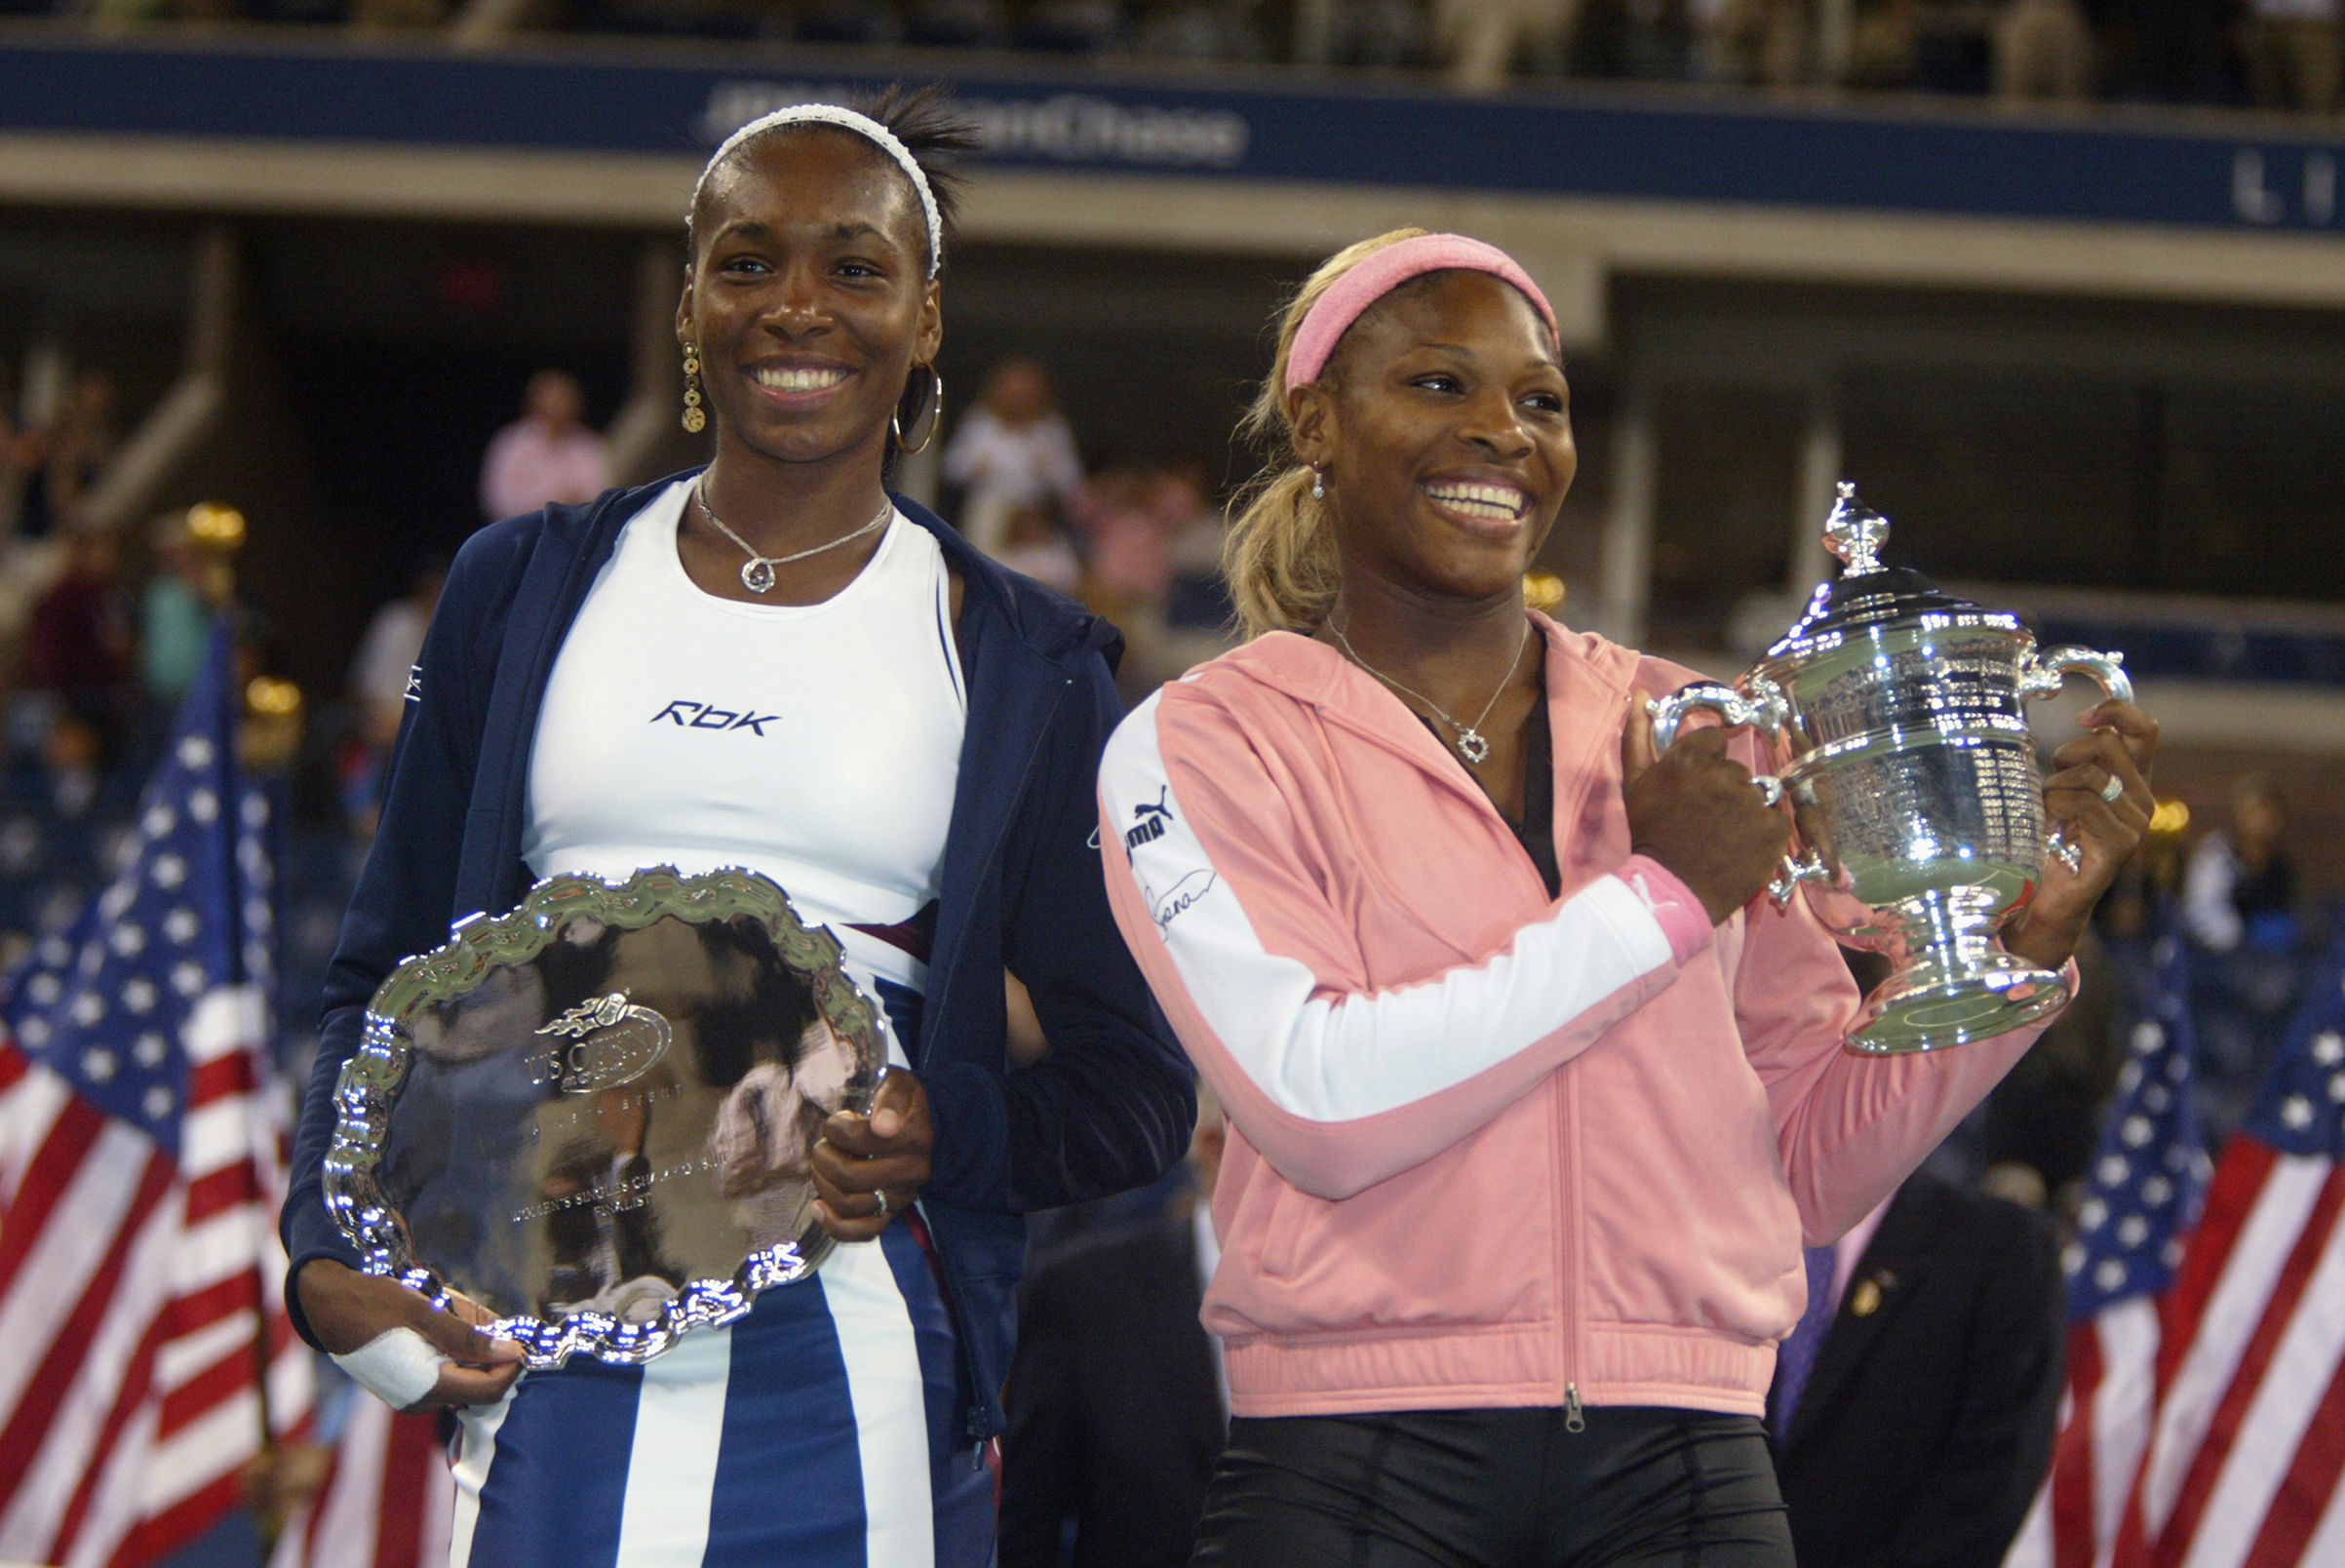 Venus Williams (L) of the USA and Serena Williams of the USA pose for photographers after the women's final of the US Open at the USTA National Tennis Center on September 7, 2002 in Flushing Meadows-Corona Park, New York. Serena Williams defeated her sister and won the US Open.